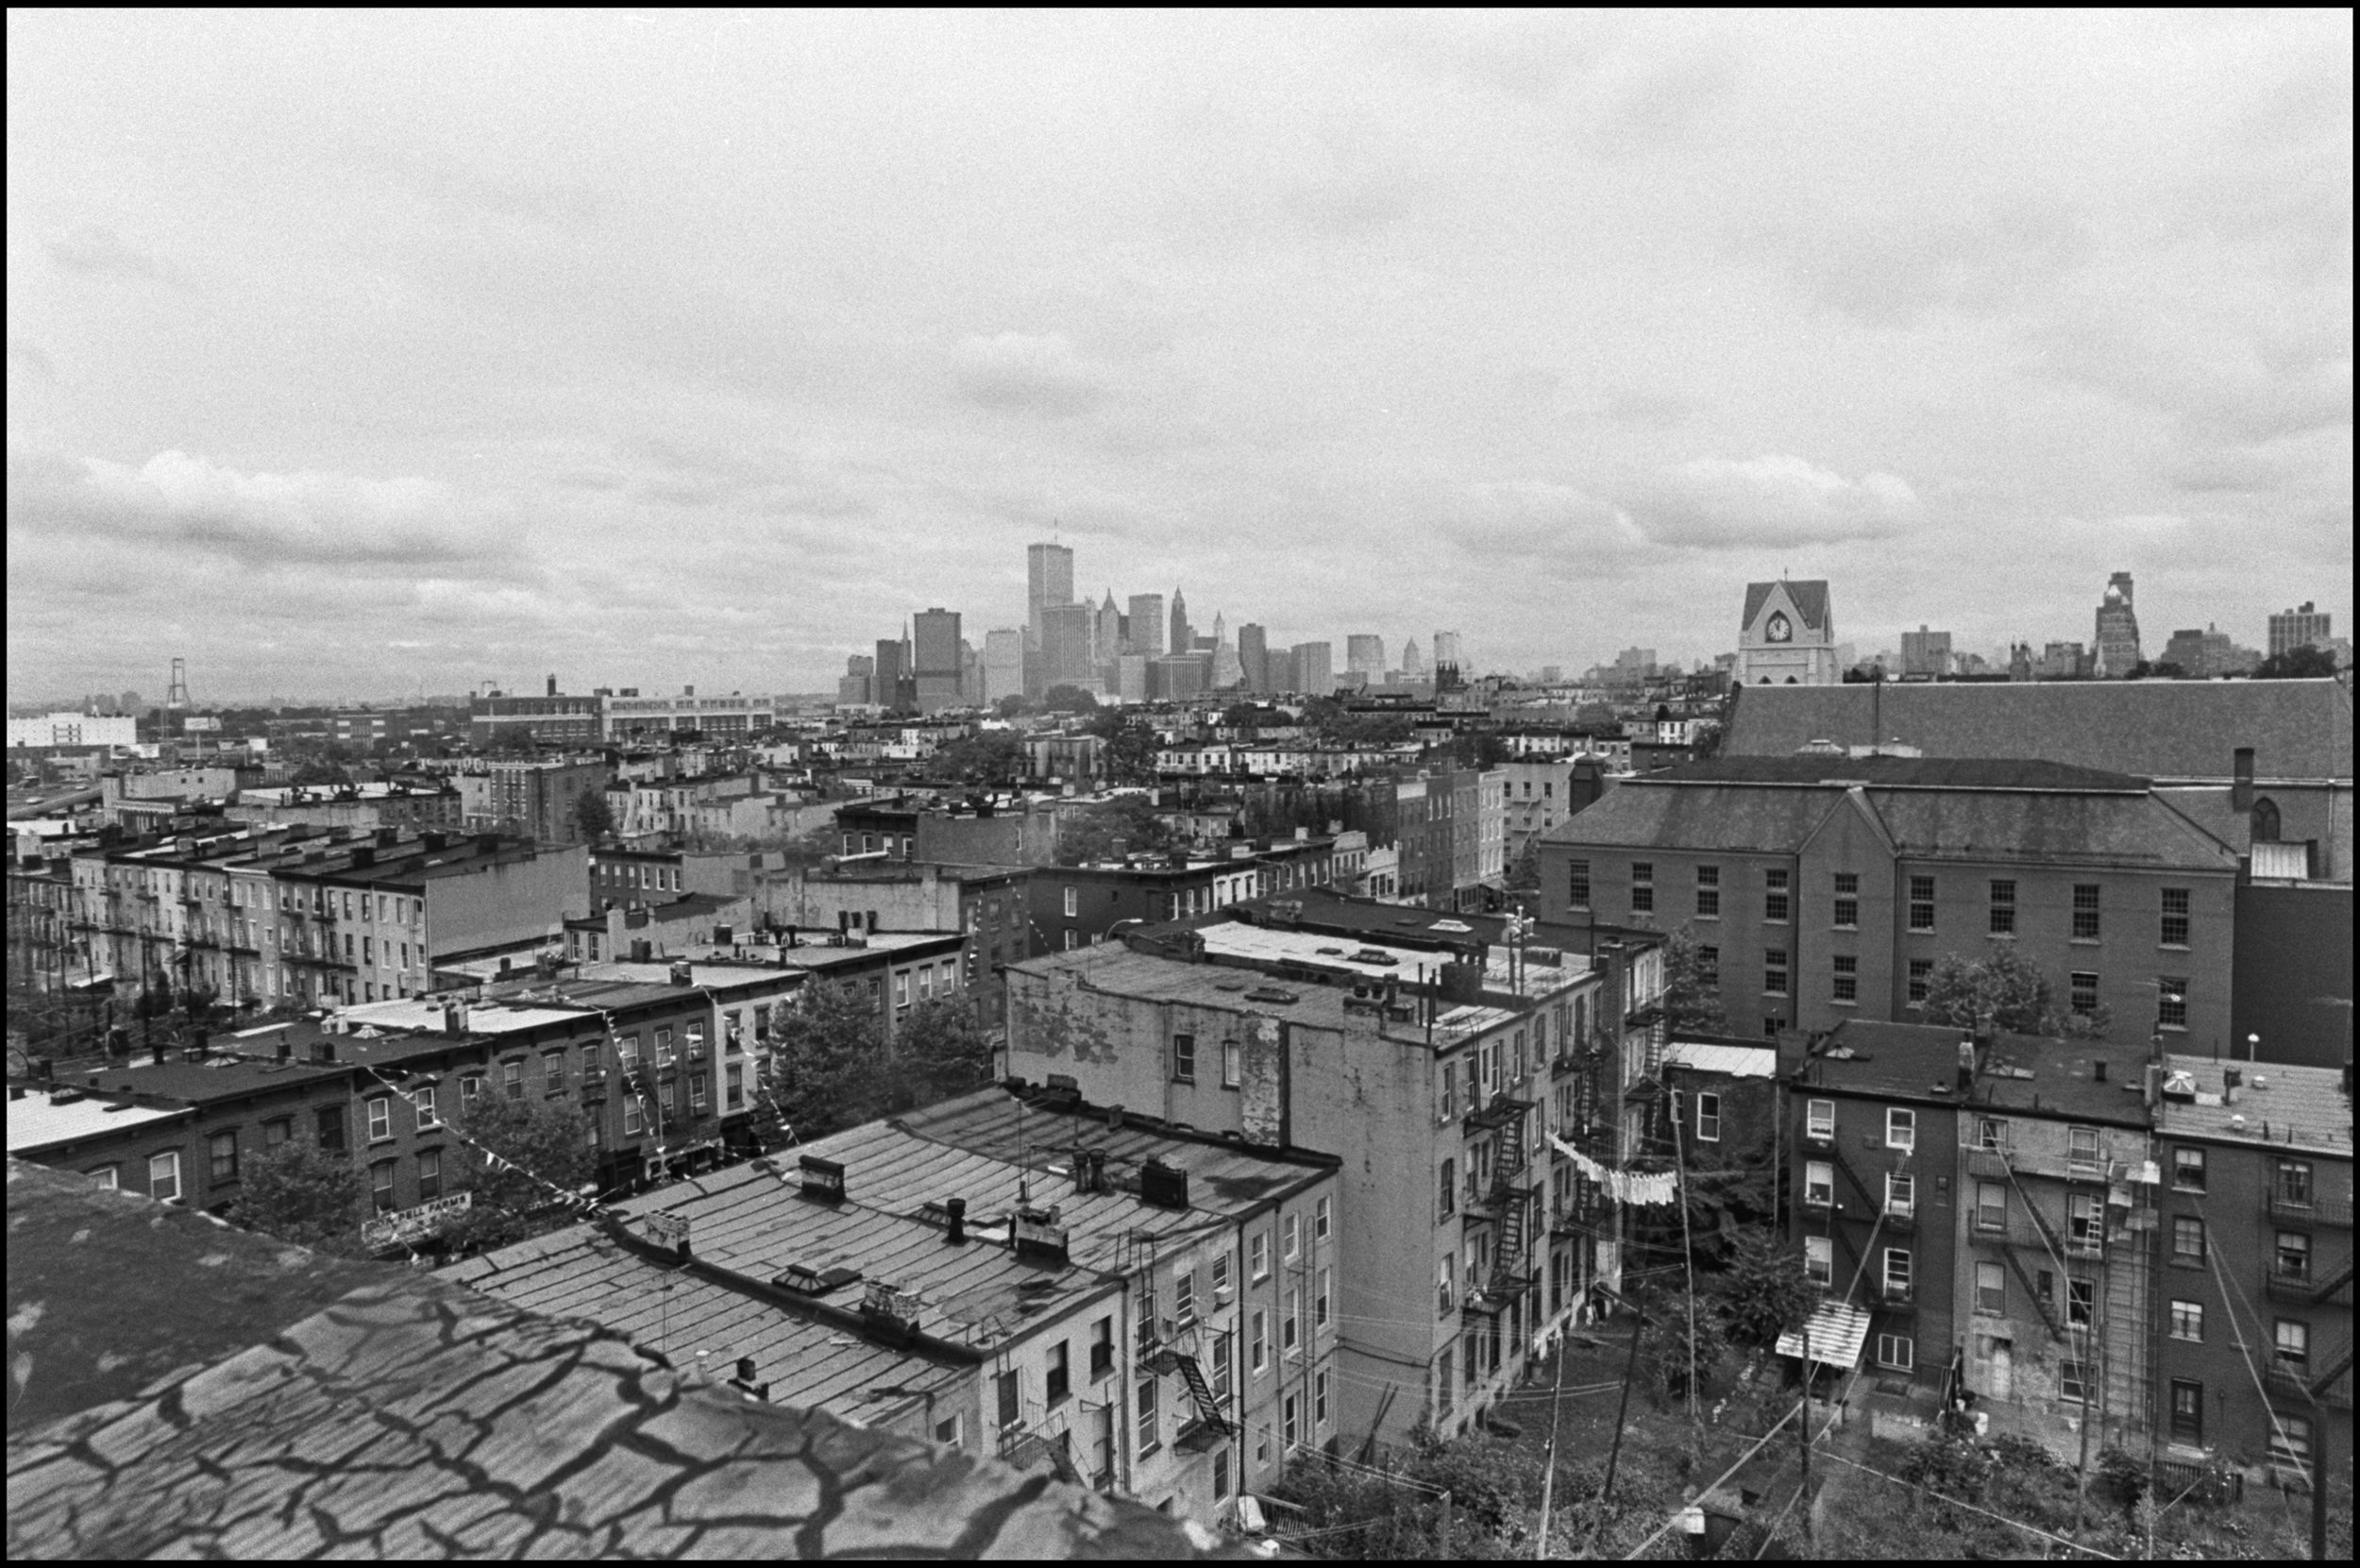 Manhattan and Brooklyn skyline, photographed from Carroll Gardens, Court Street, Brooklyn, October 1984. Photograph by Paul Rice and Leonard Boykin.